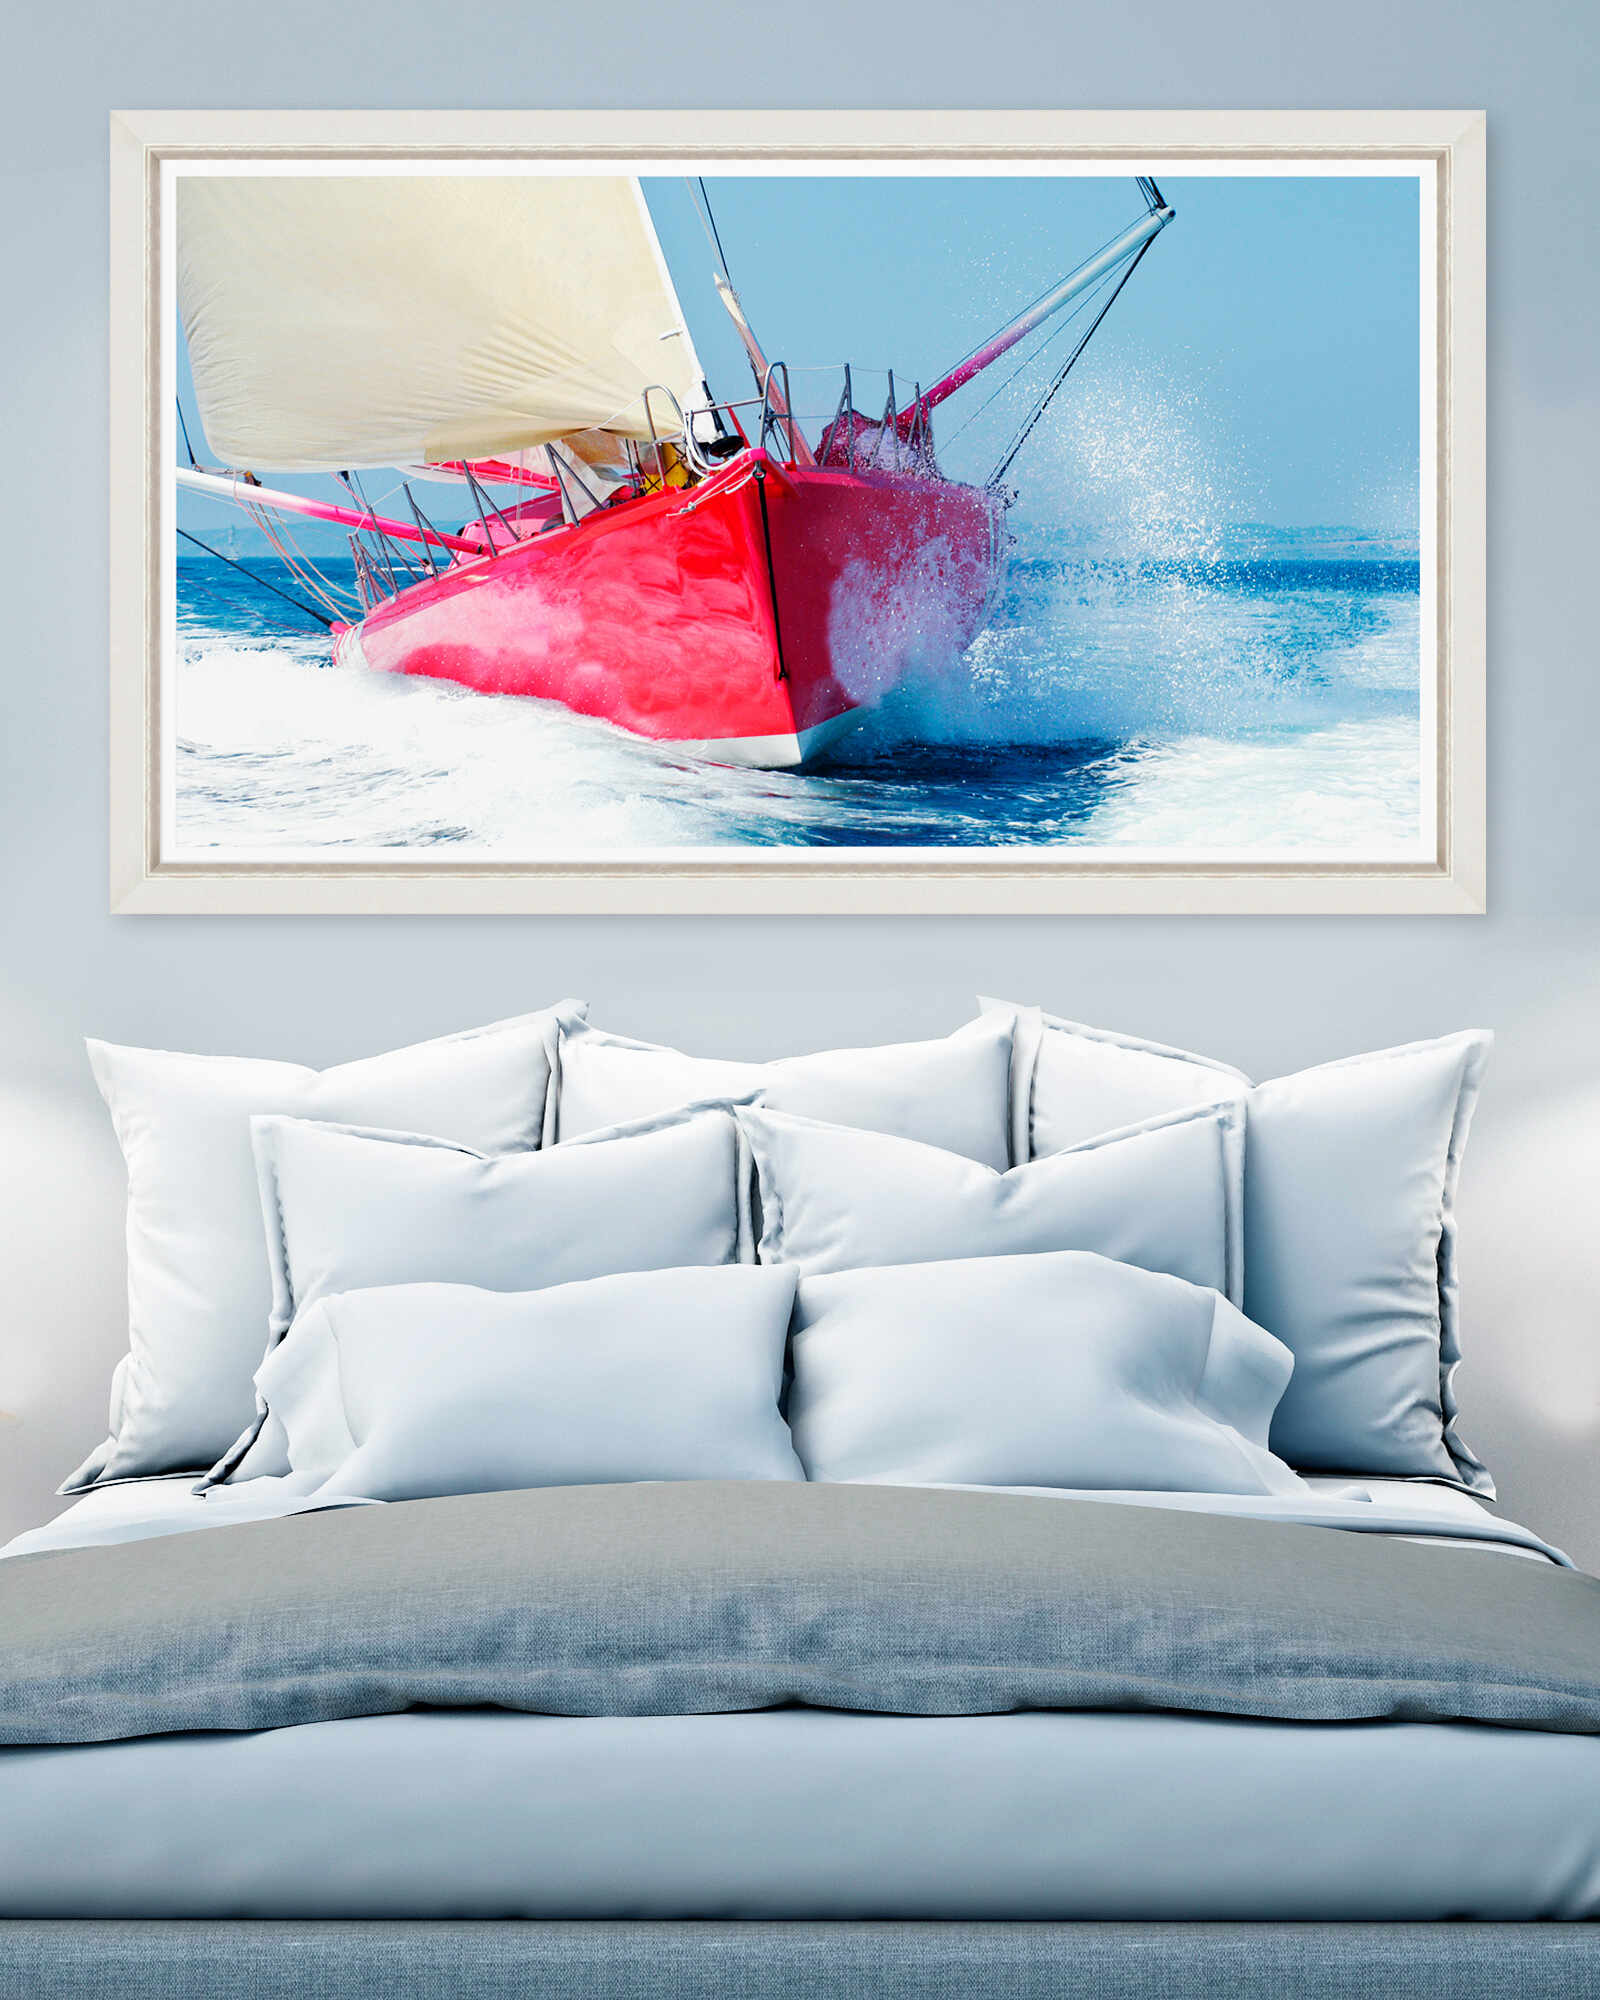 Tablou Framed Art Red Sailboat la pret 742 lei